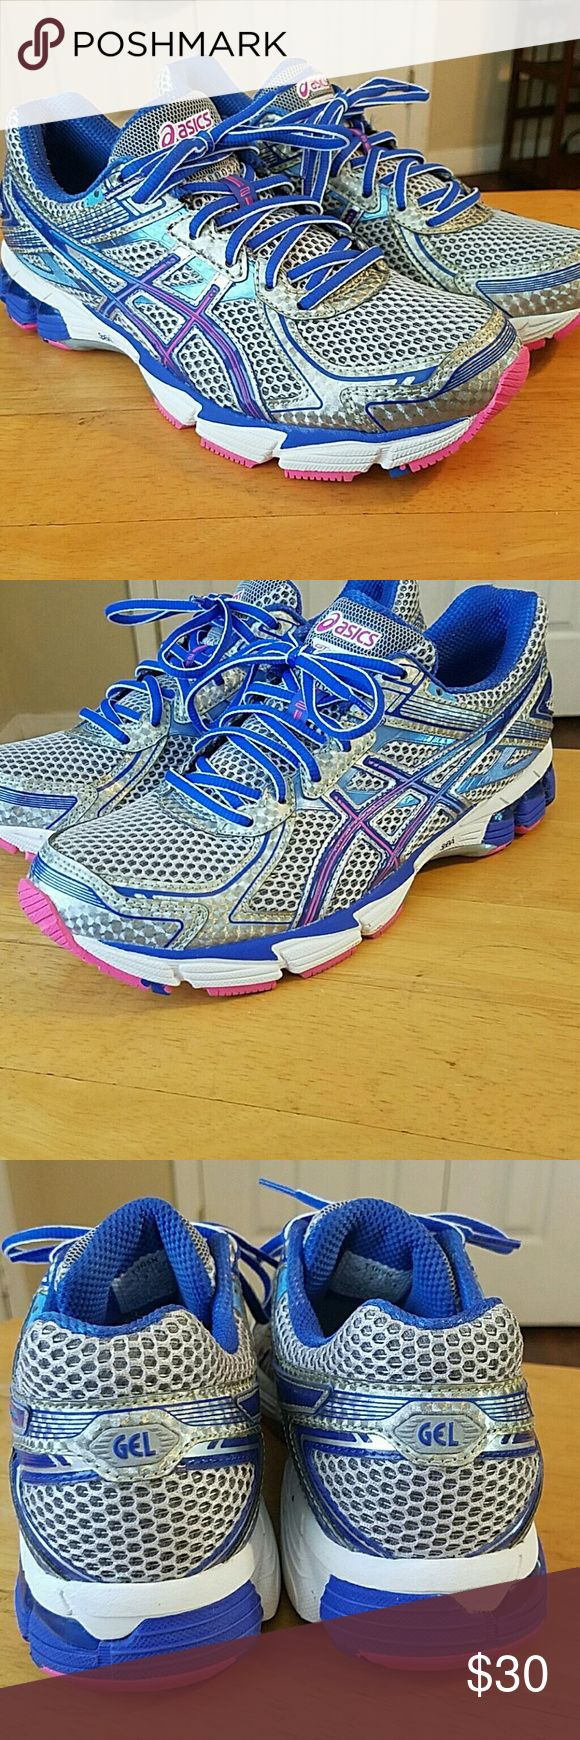 Asics ladies Doumax GEL size 9 Asics ladies running shoes in near mint condition only worn a few times. These were my wife's and she only wore that at the gym. Nothing wrong with these shoes at all.  The colors are silver blue and pink. Asics Shoes Sneakers